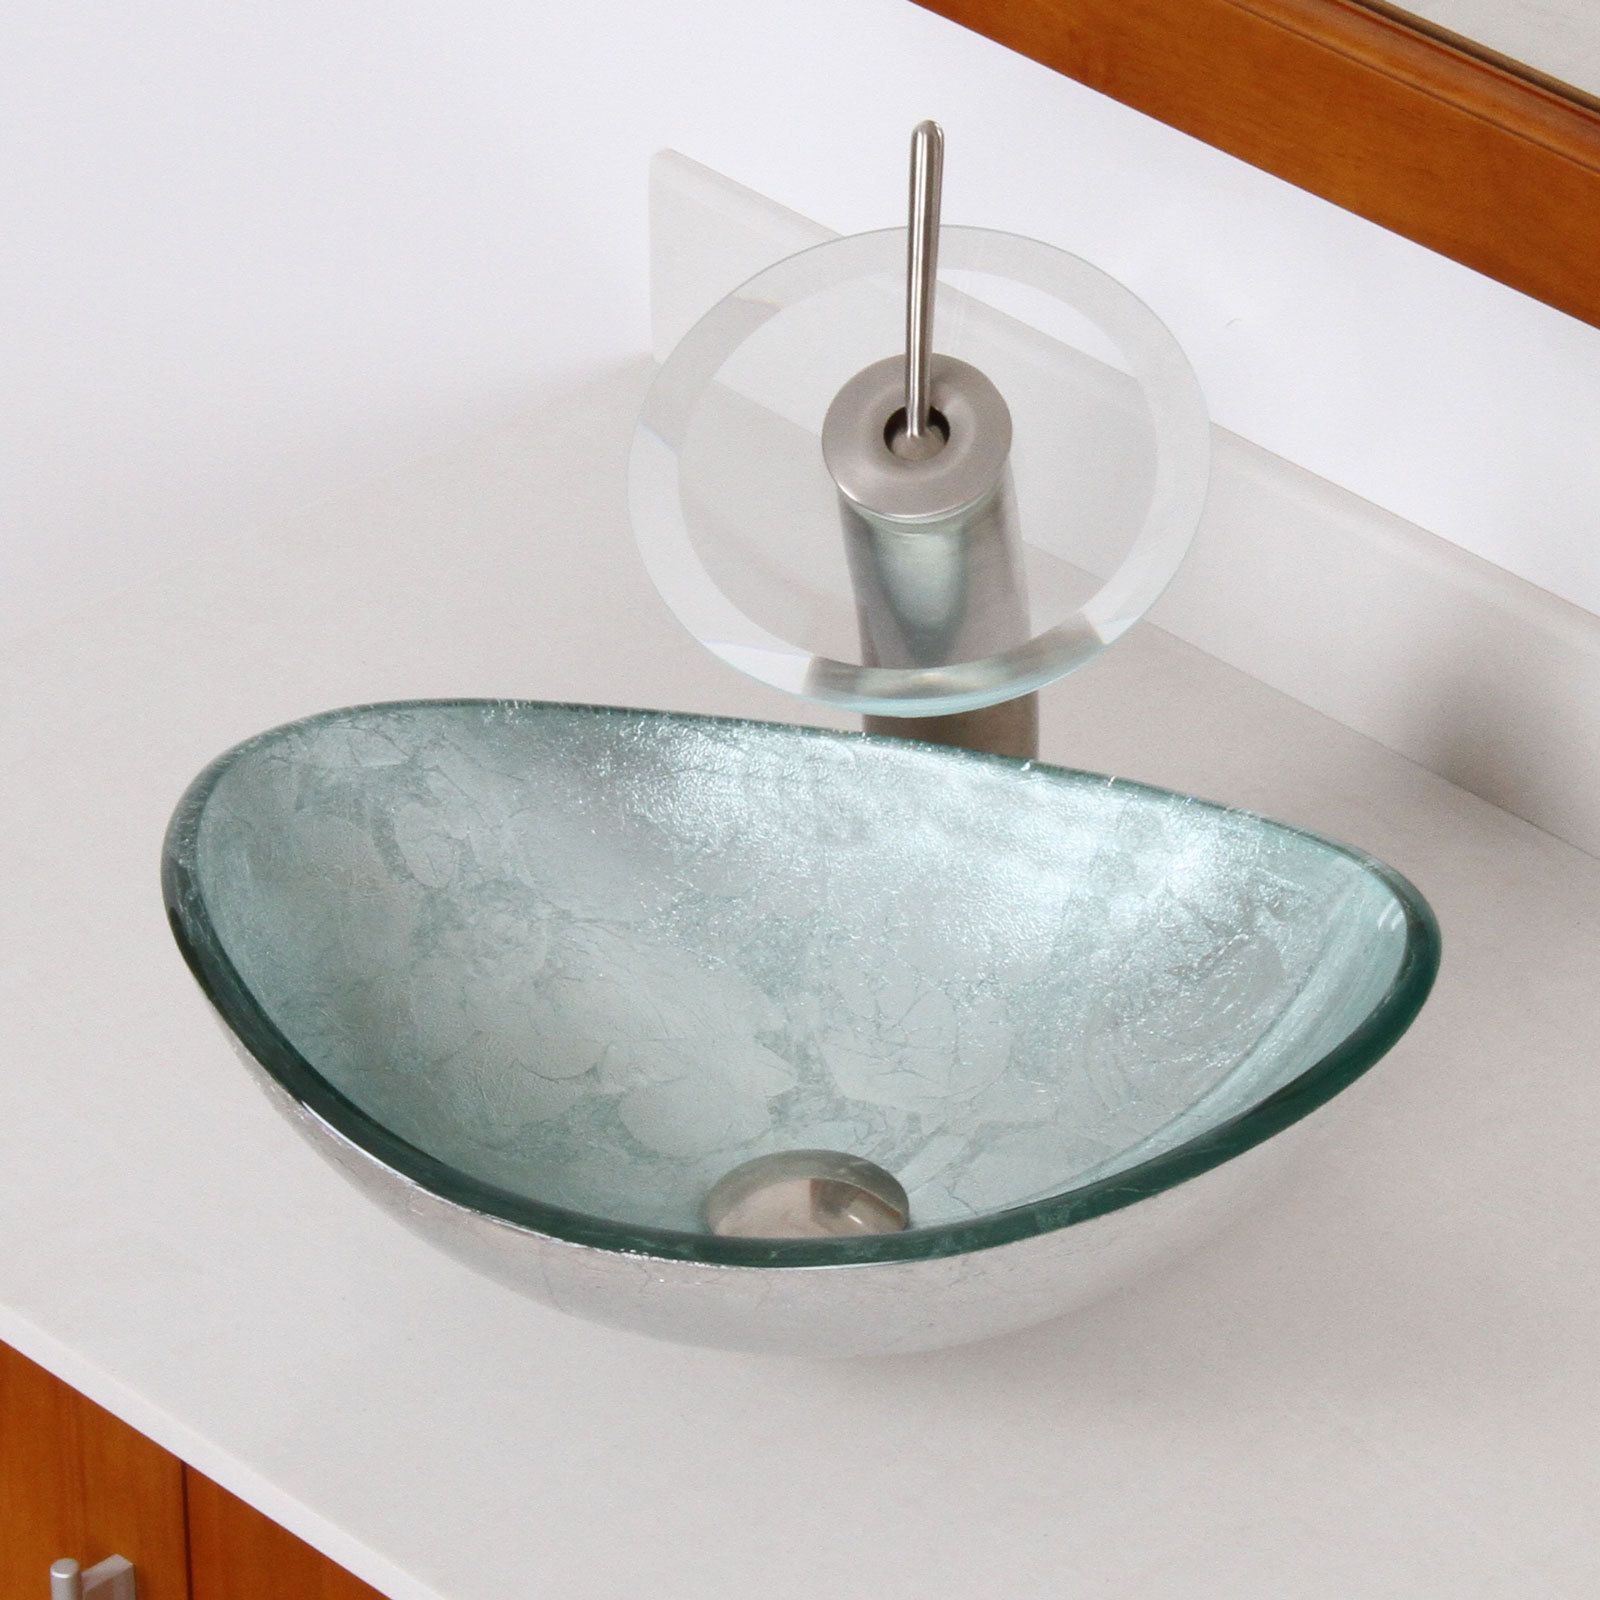 Elegance Products From Elite Brand New Design From Europe This Glass Sink Will Look Fabulous In Any Bathroom Bra Glass Sink Vessel Sink Bathroom Vessel Sink